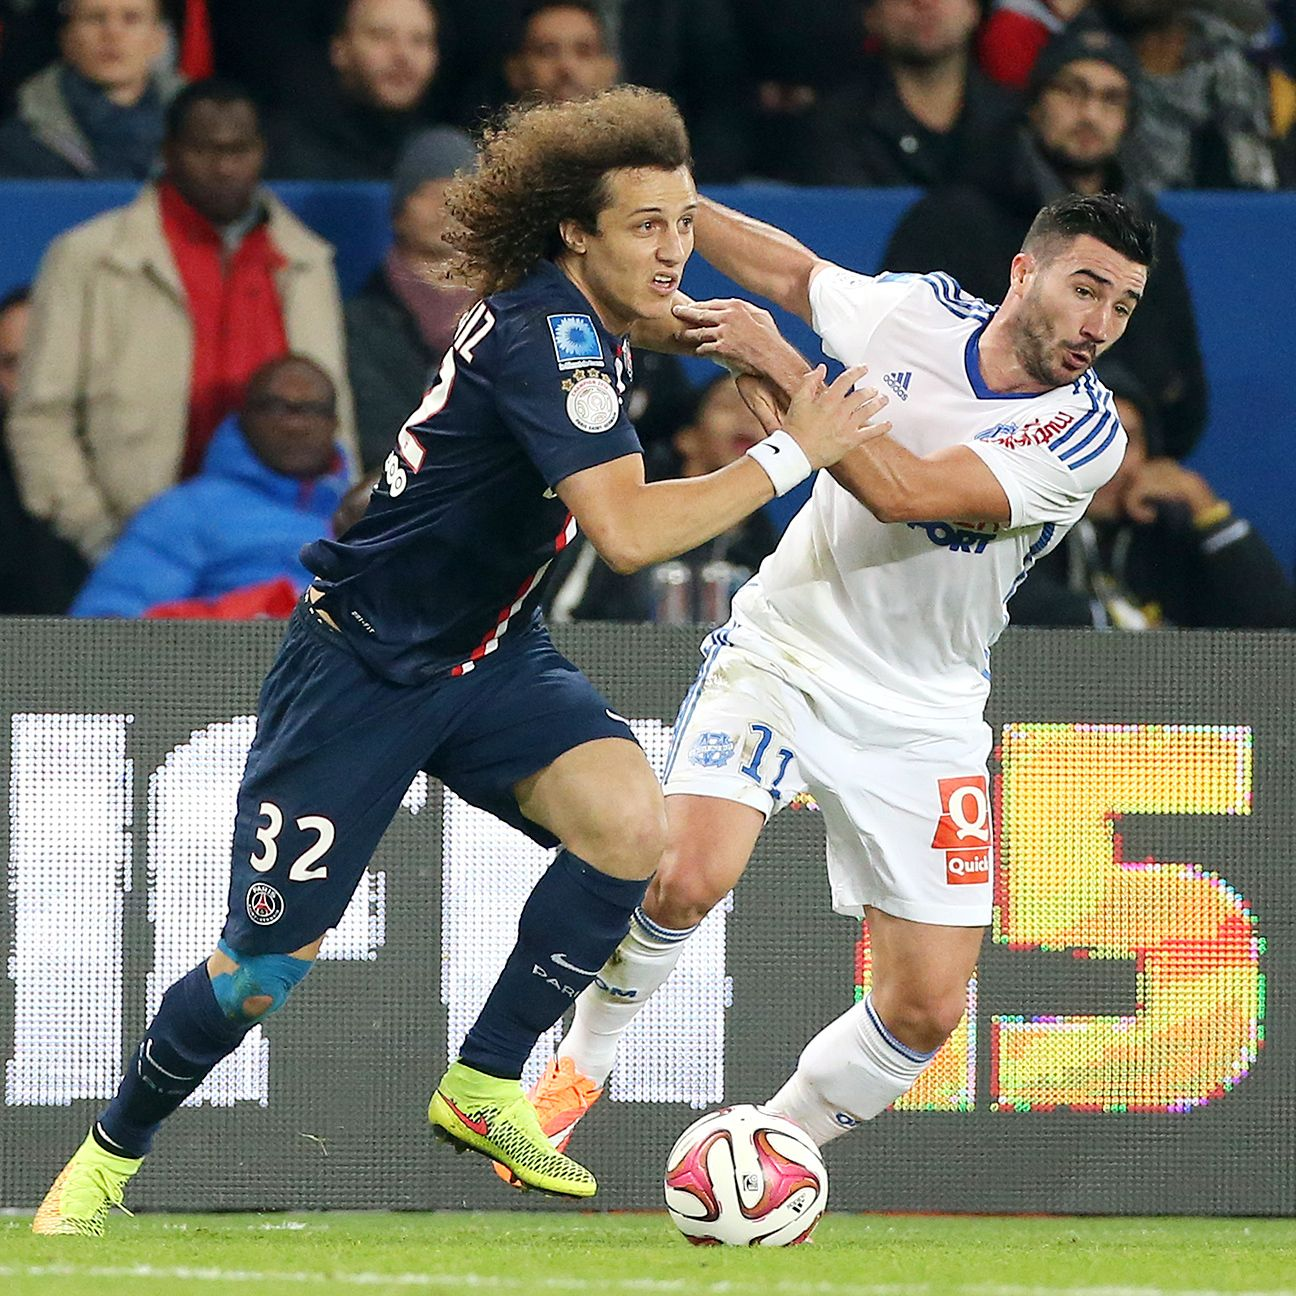 David Luiz and PSG can expect another tough battle with rivals Marseille on Sunday.